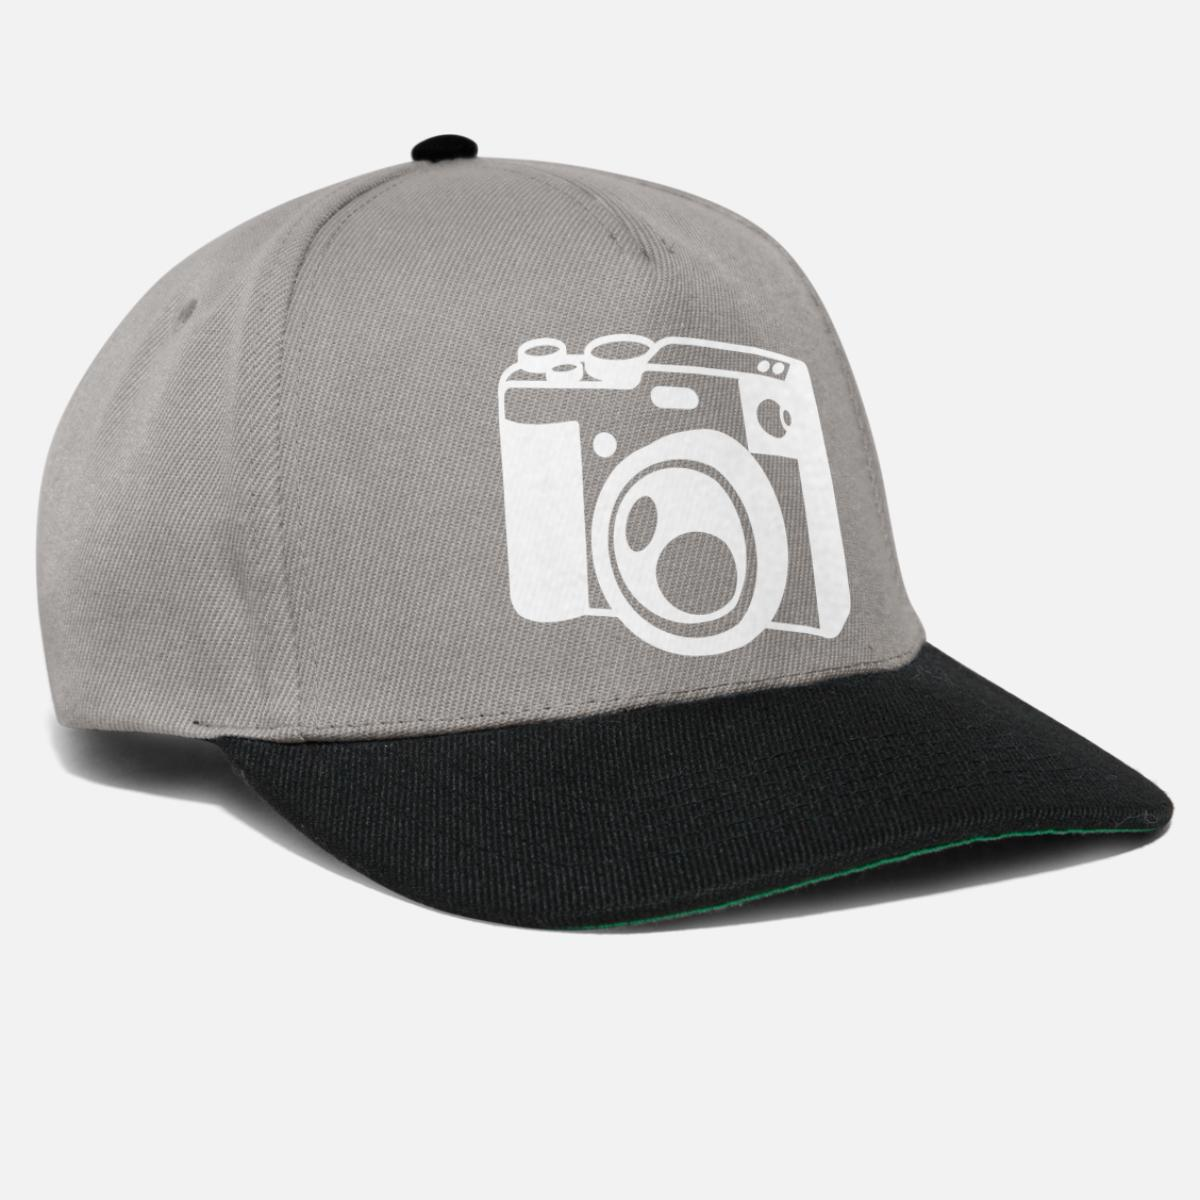 9d7c303fc0f camera old style shutter colour vintage Snapback Cap